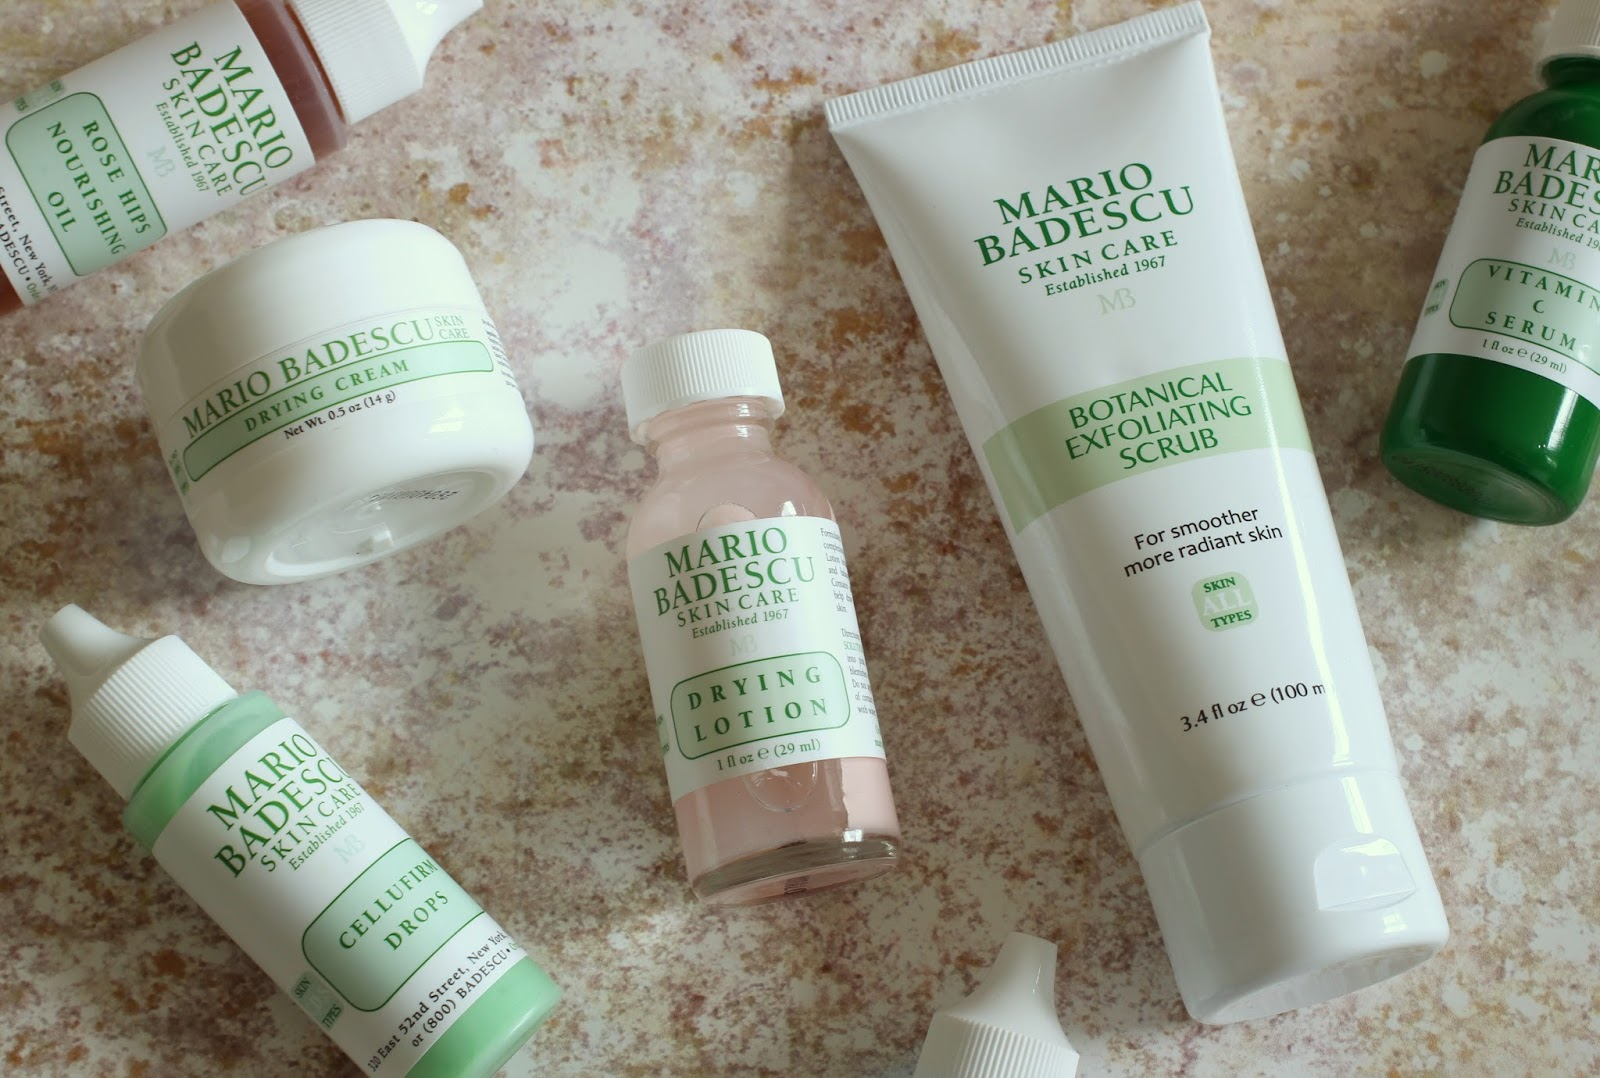 Behind The Brand Mario Badescu The Beauty Informer